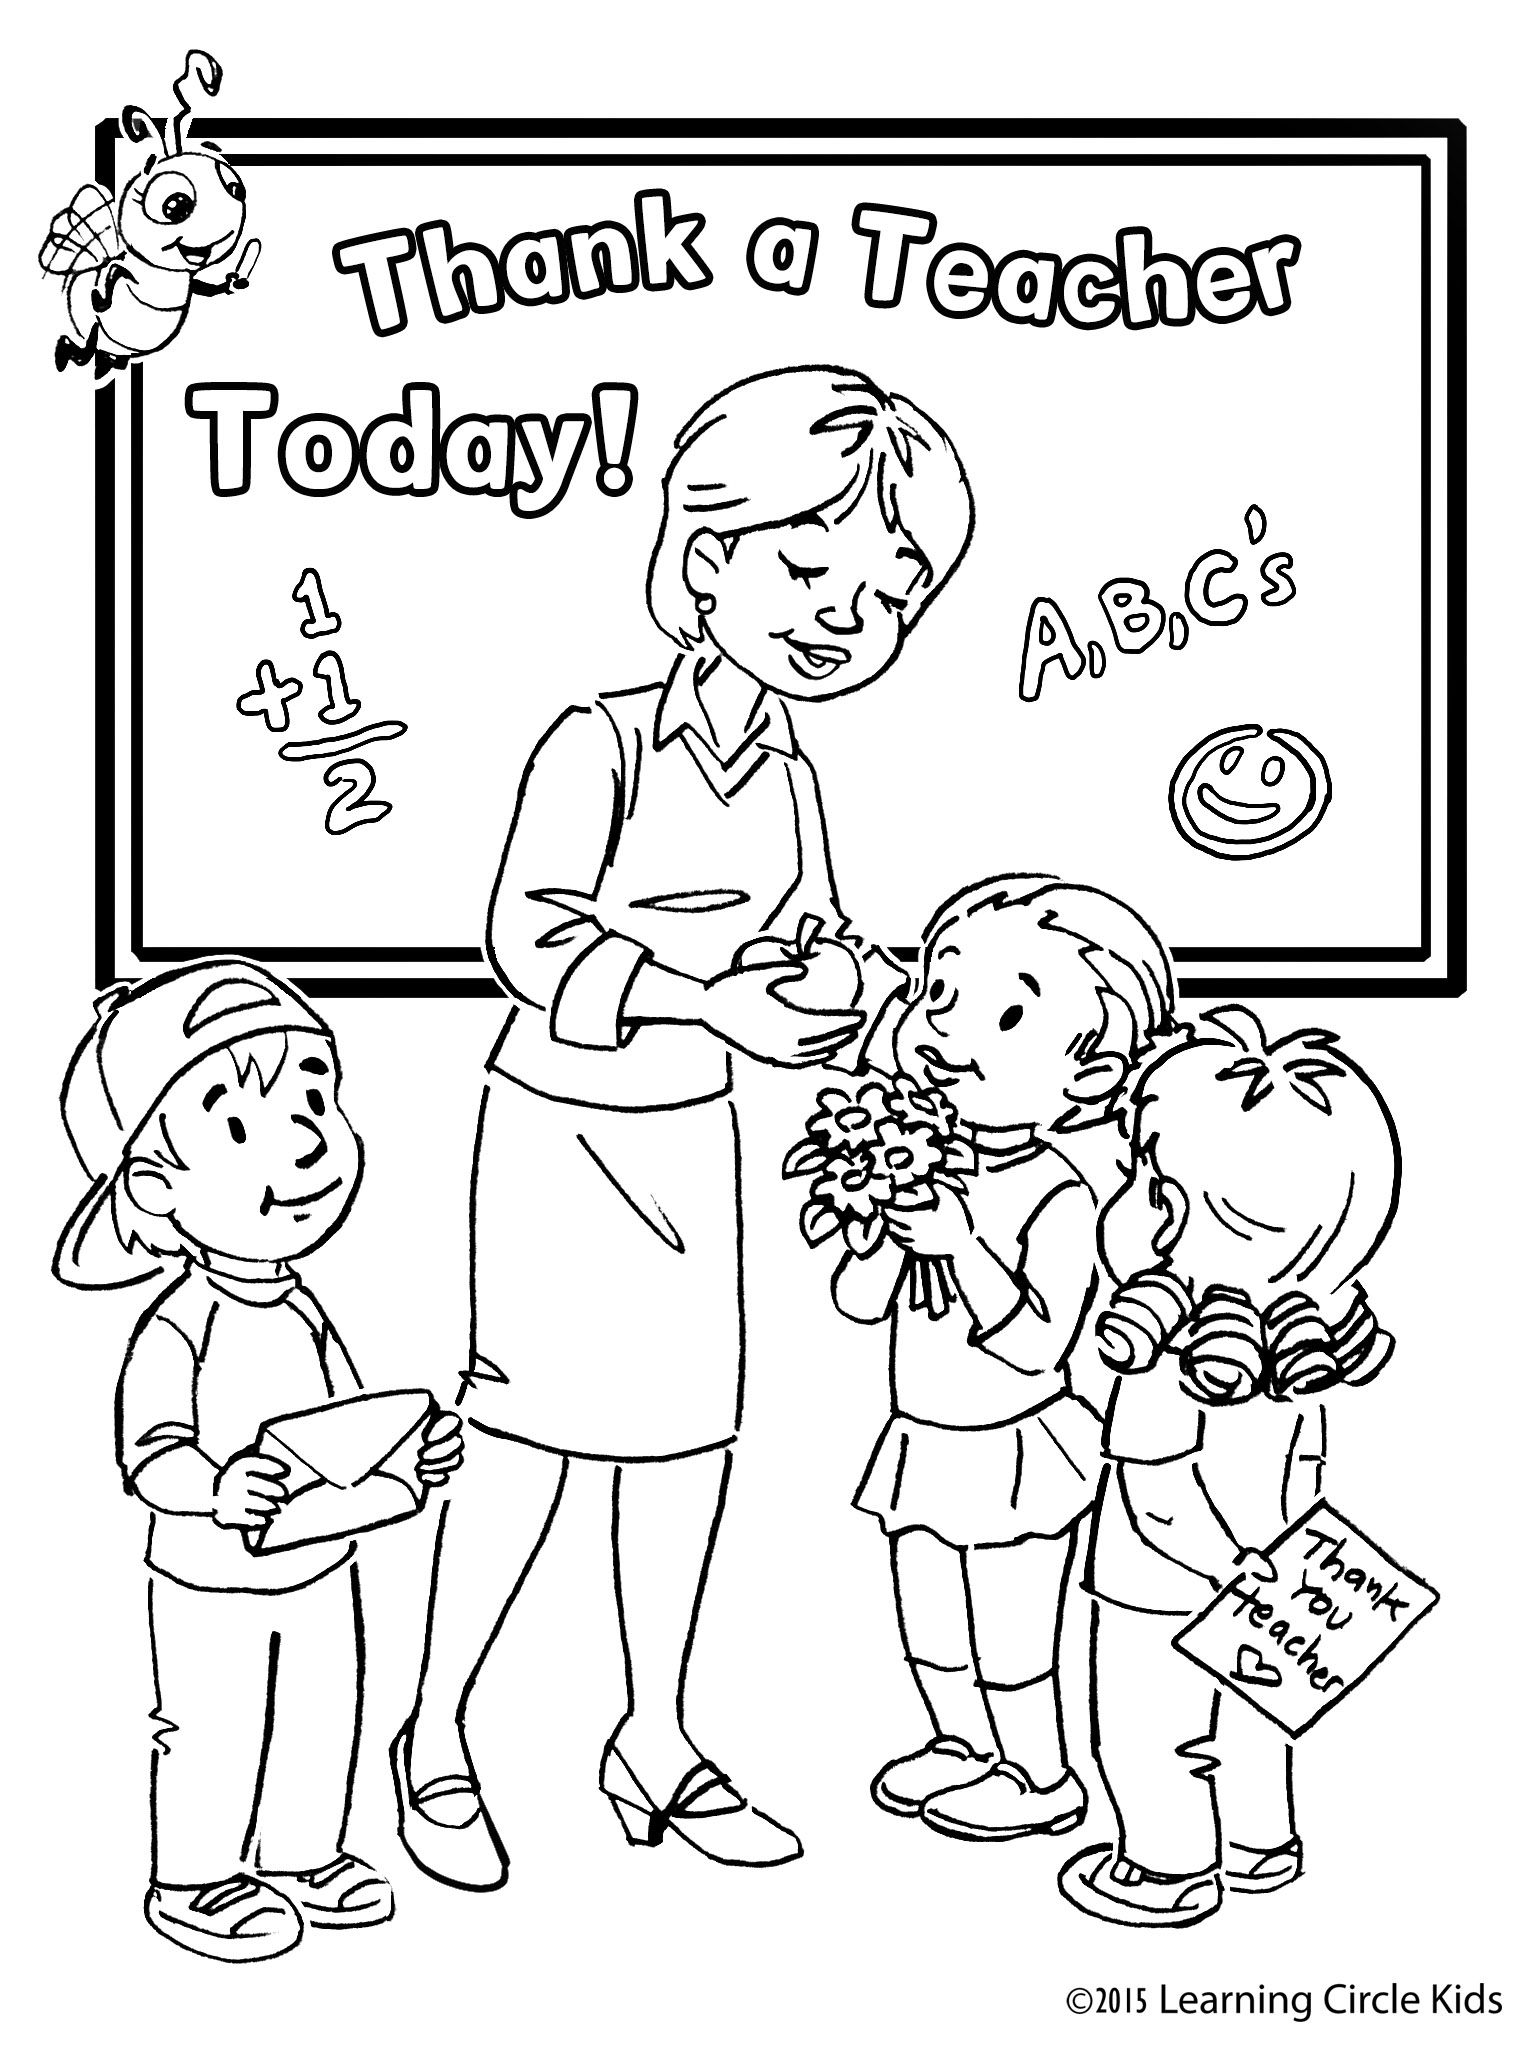 Free kids coloring page for teacher appreciation day http readerbee com